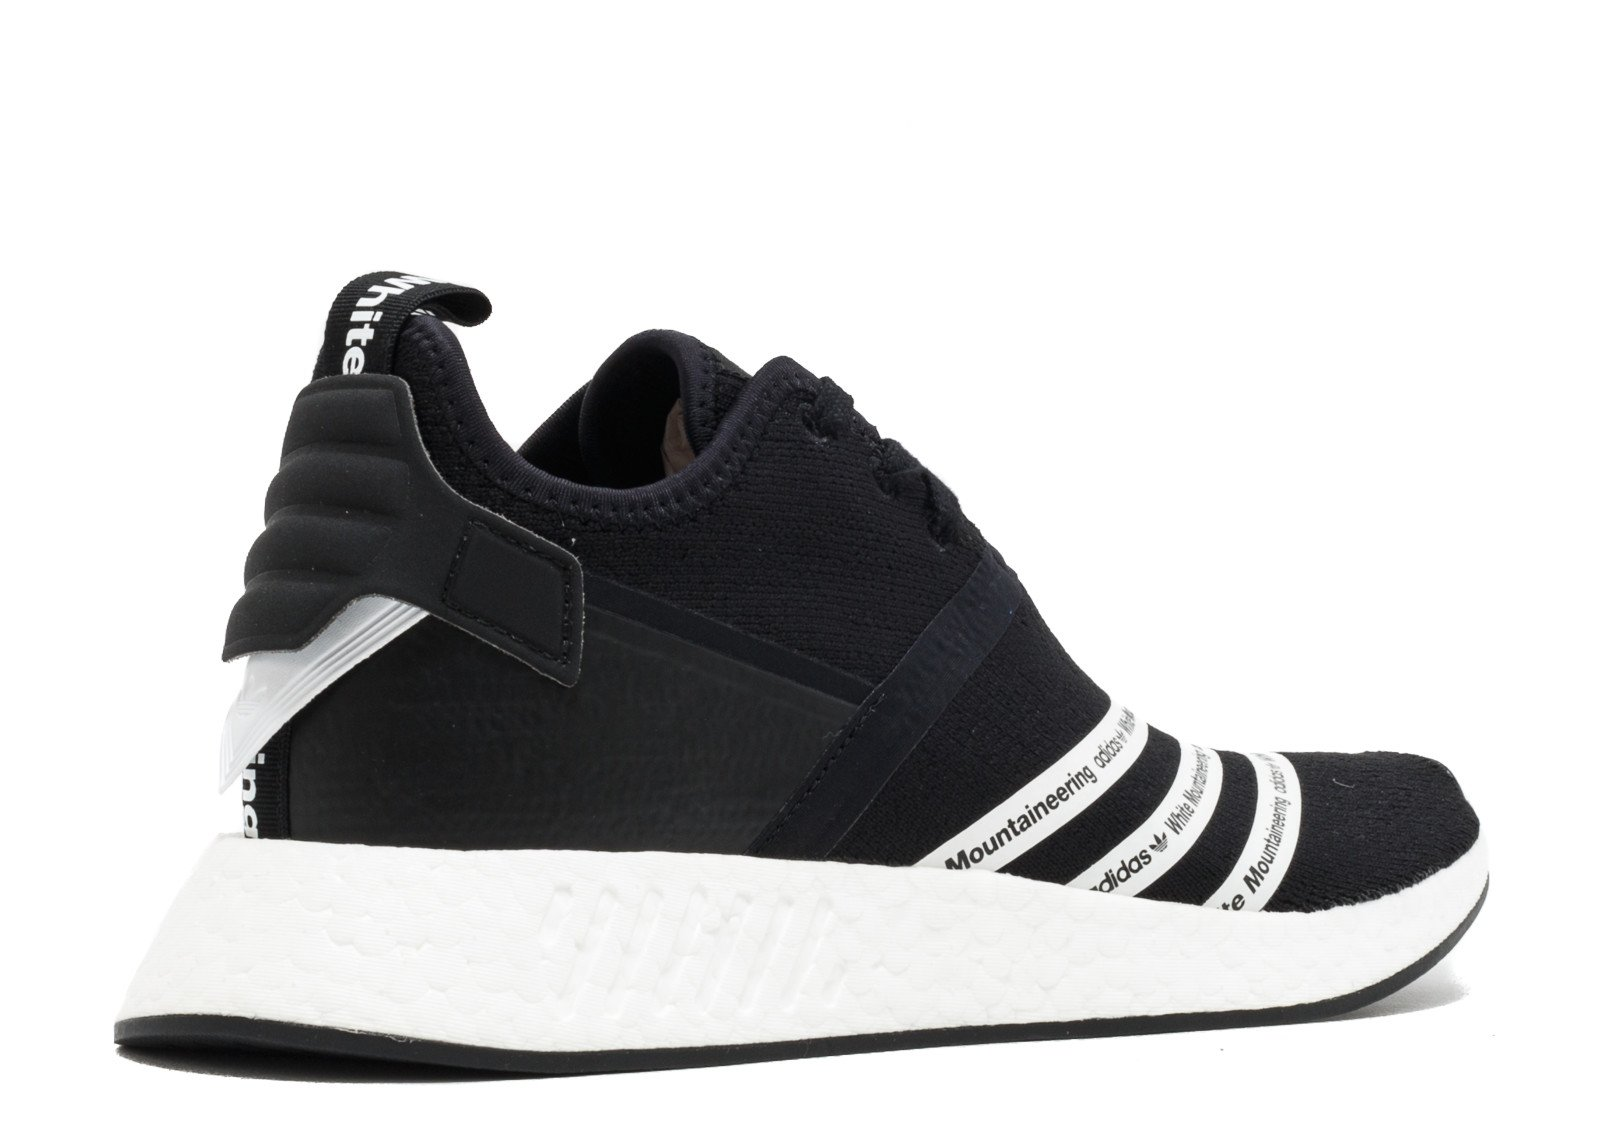 Adidas Wm Nmd R2 Pk White Mountaineering Bb2978 Size 8 5